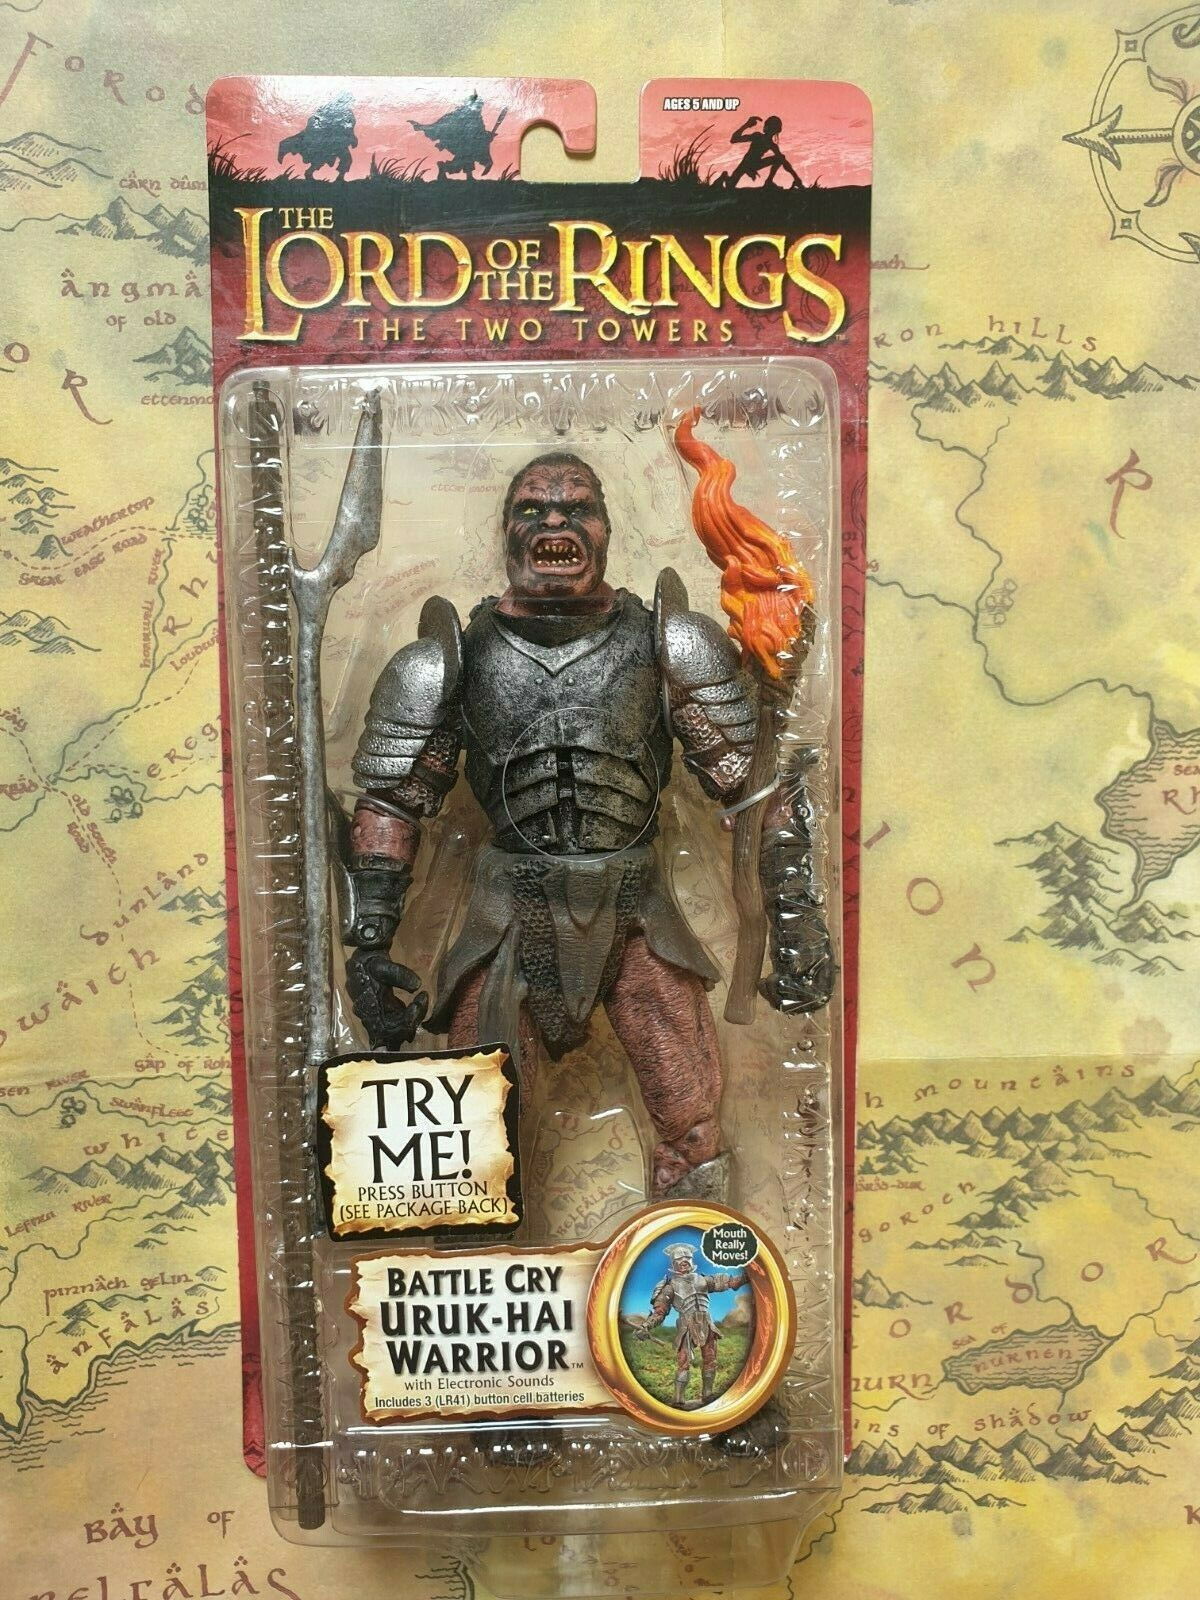 LORD OF THE RINGS ACTION FIGURE Battle Cry Uruk Hai Warrior toybiz NEUF